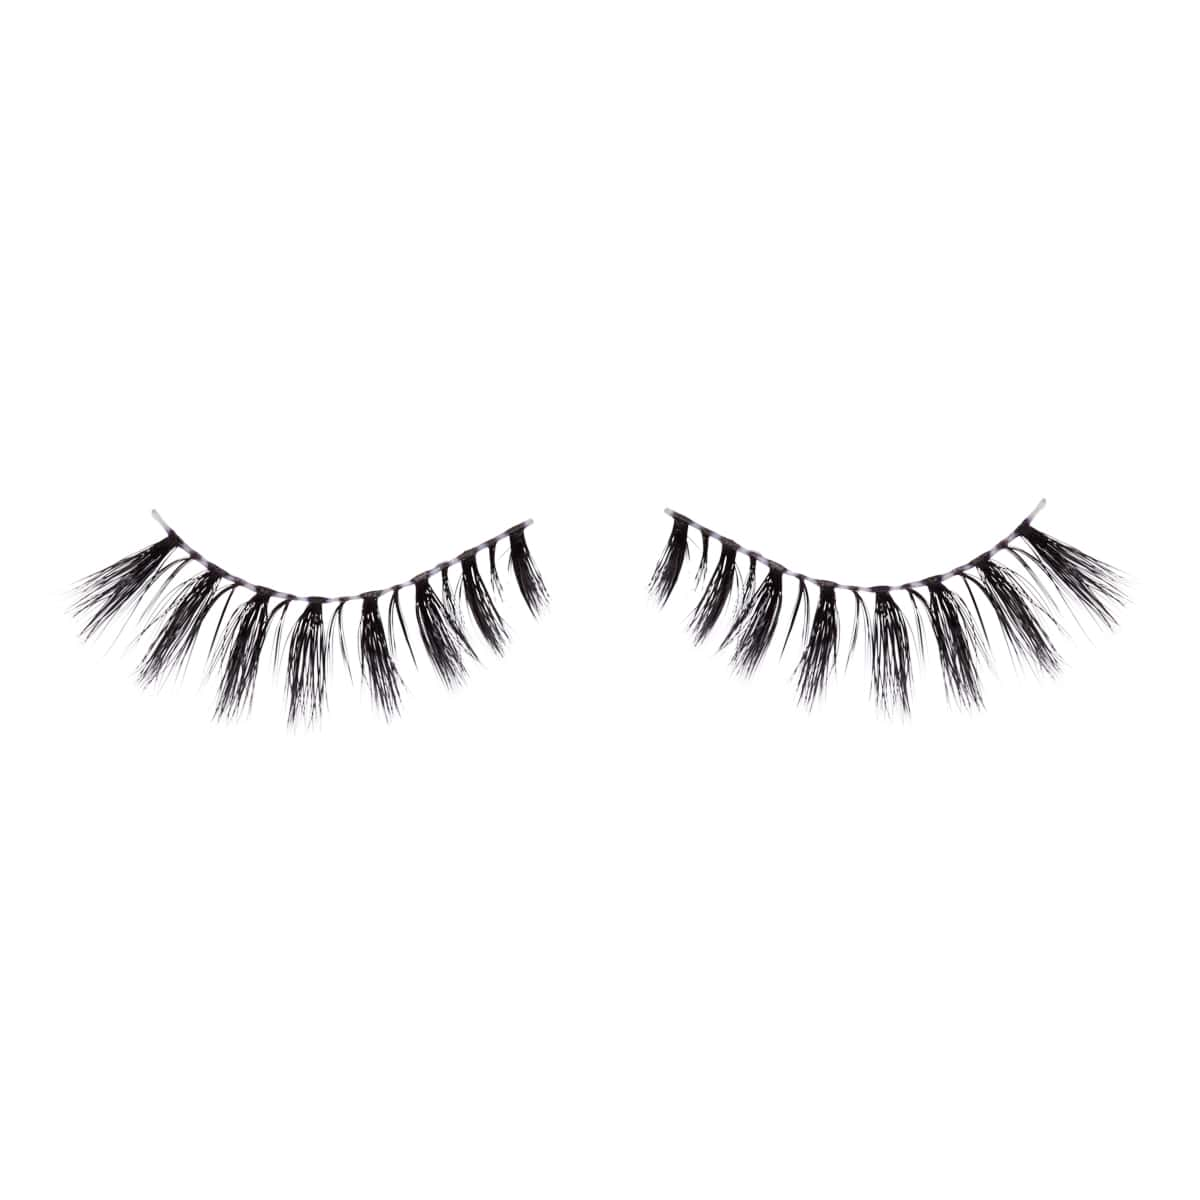 Pro Eyelashes In Jetsetter Pur The Complexion Authority